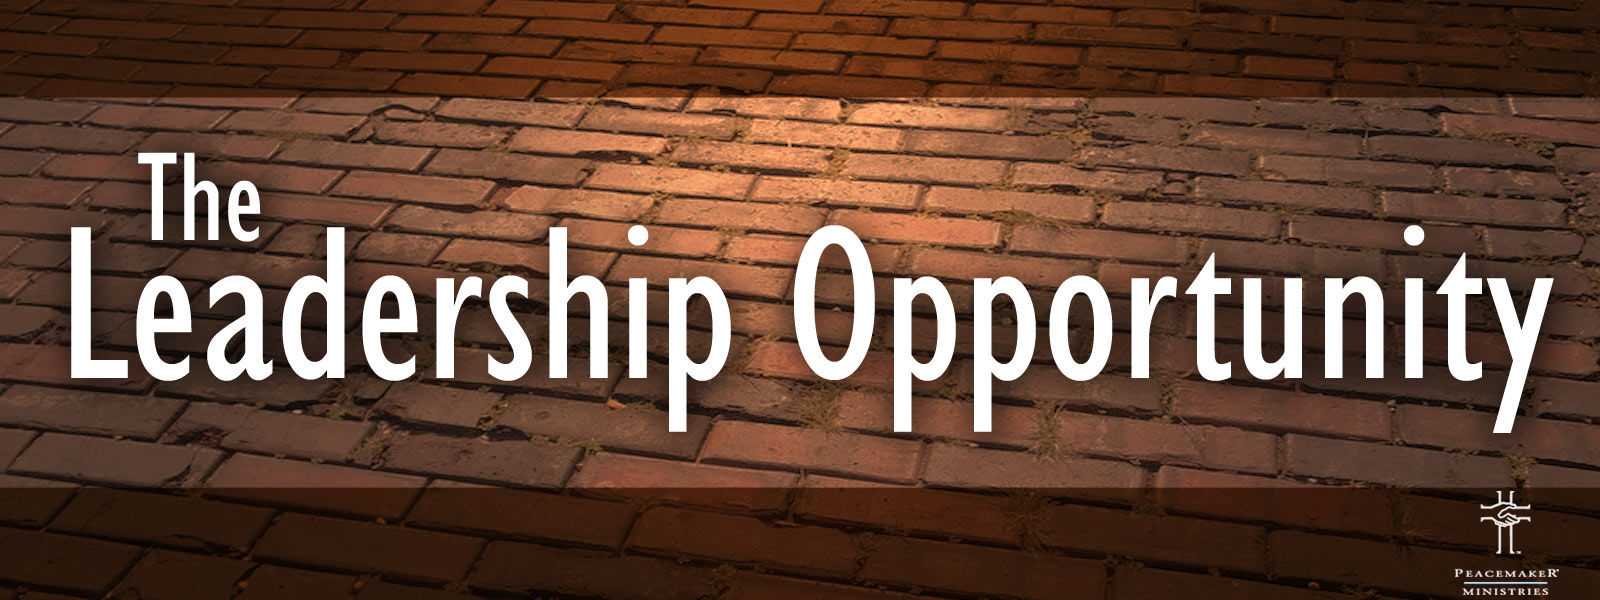 The Leadership Opportunity